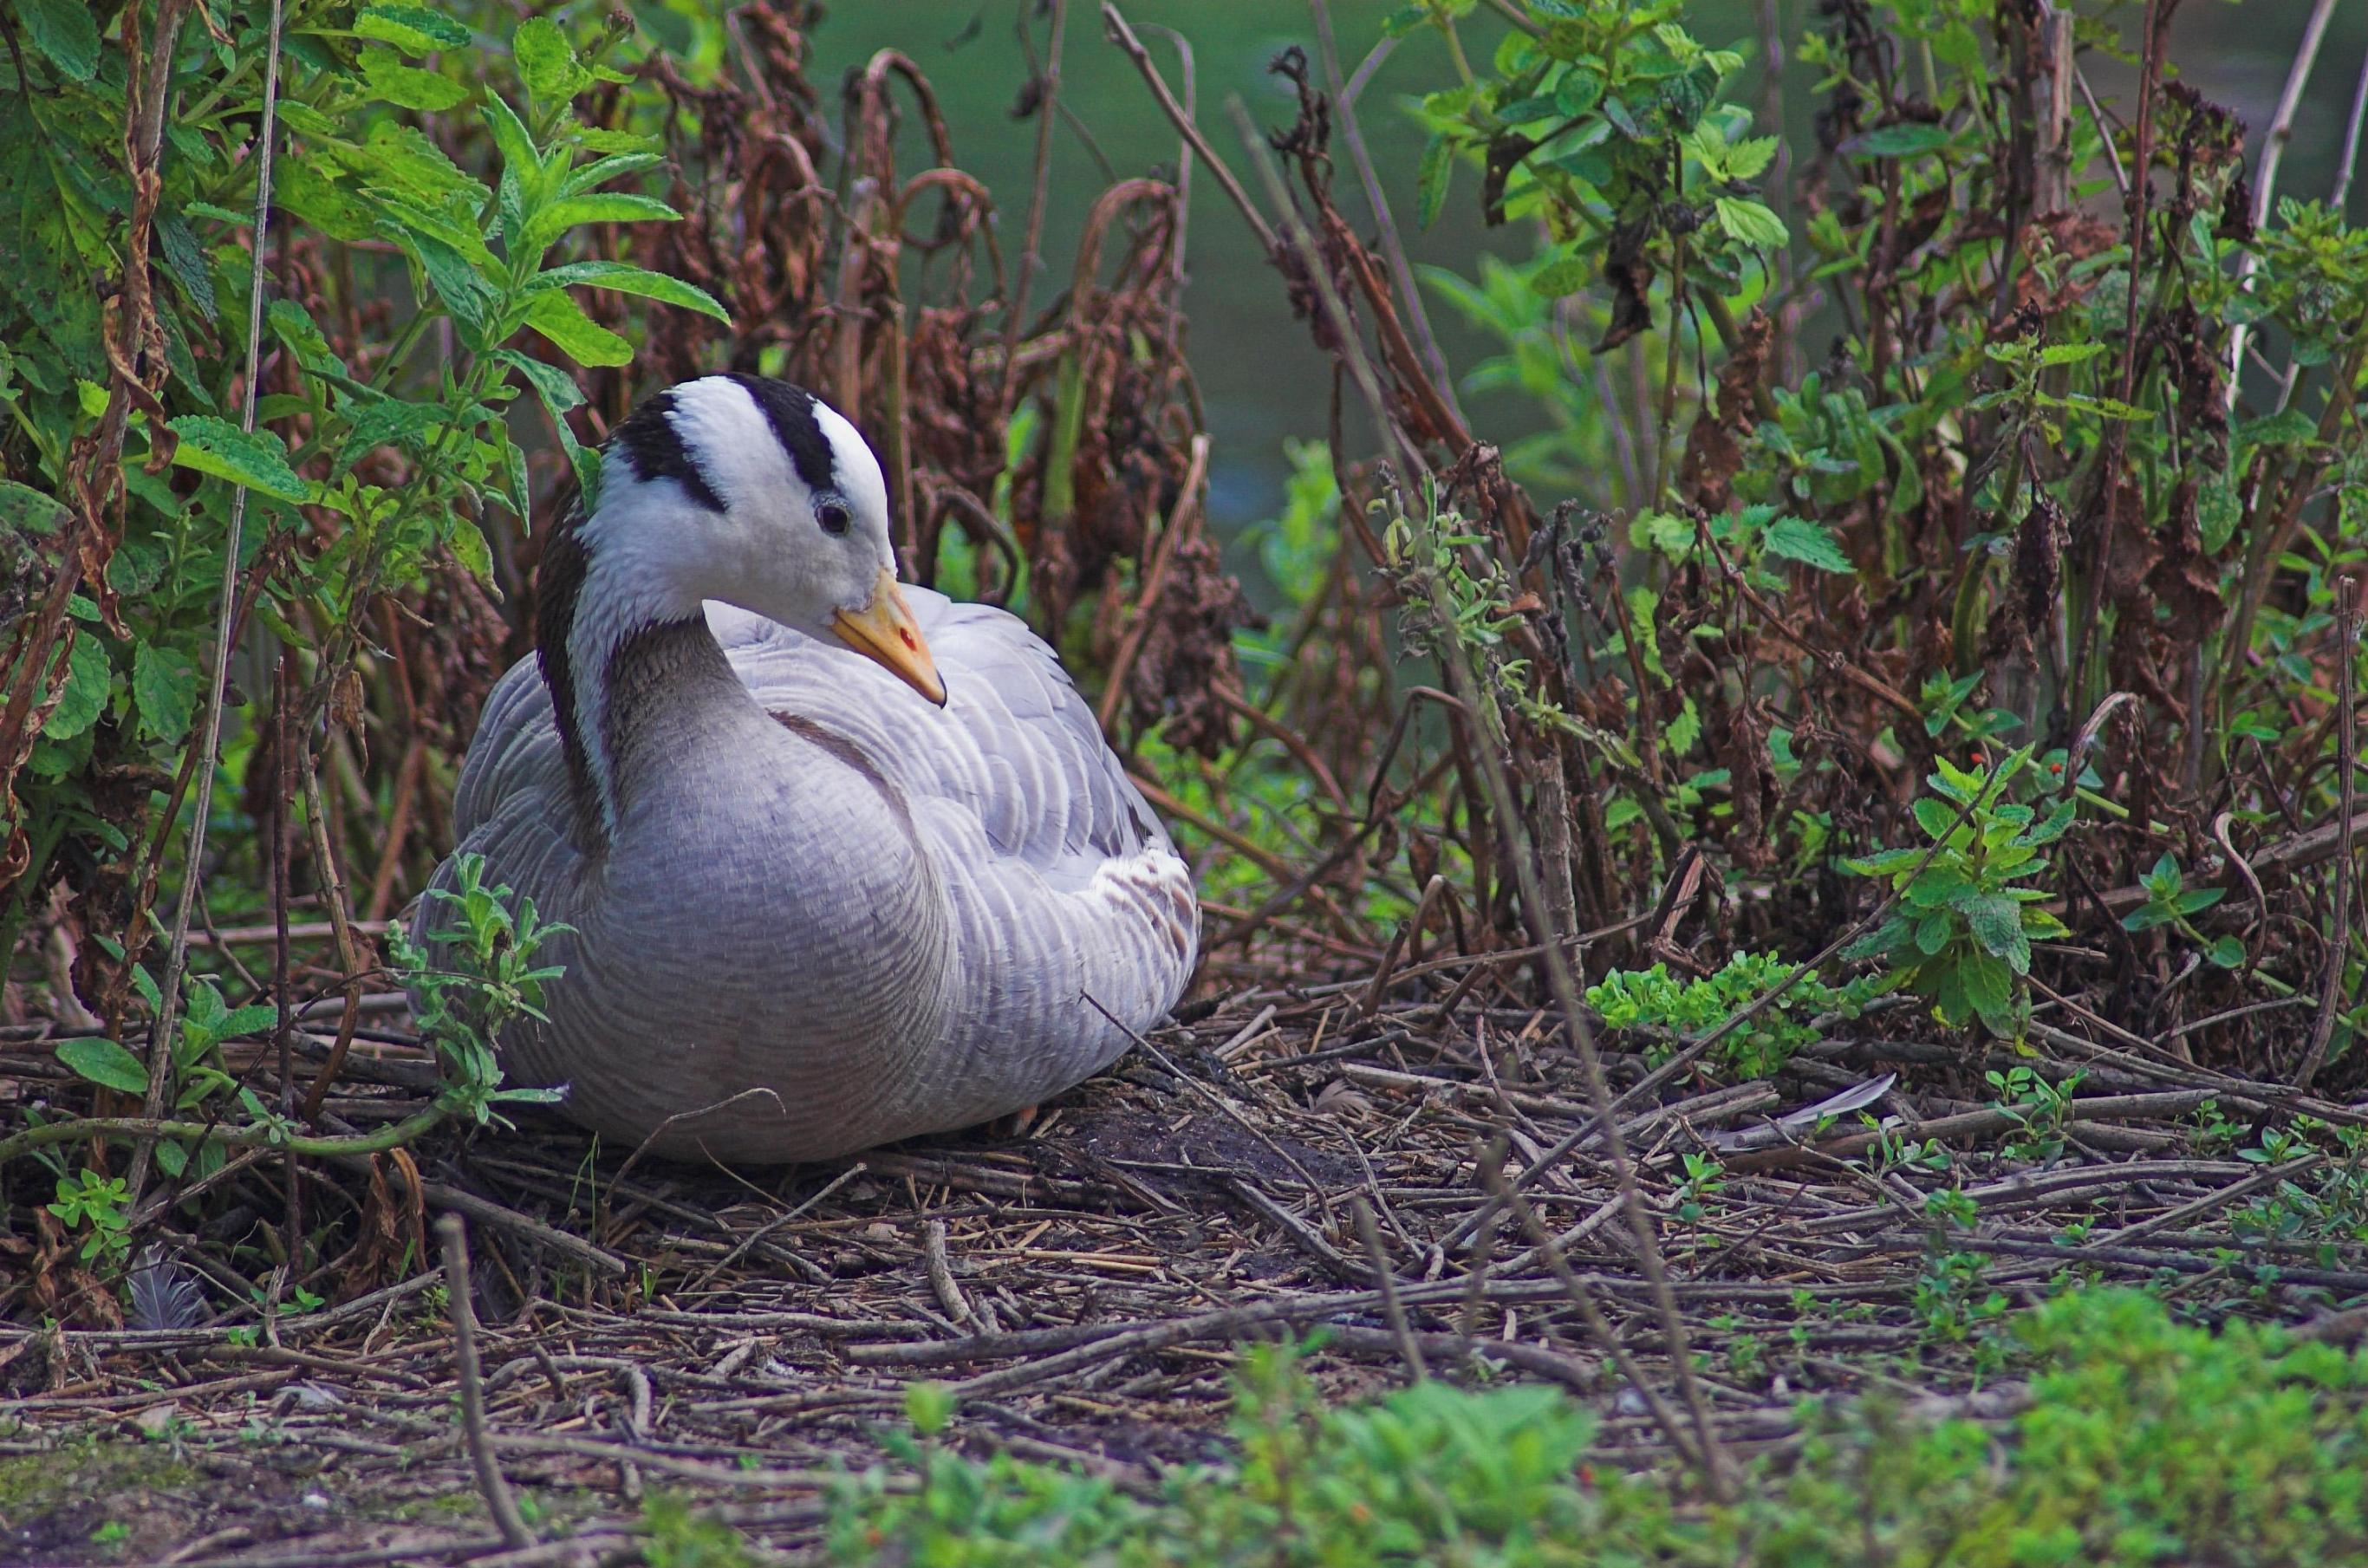 Bar-headed Goose in bushes